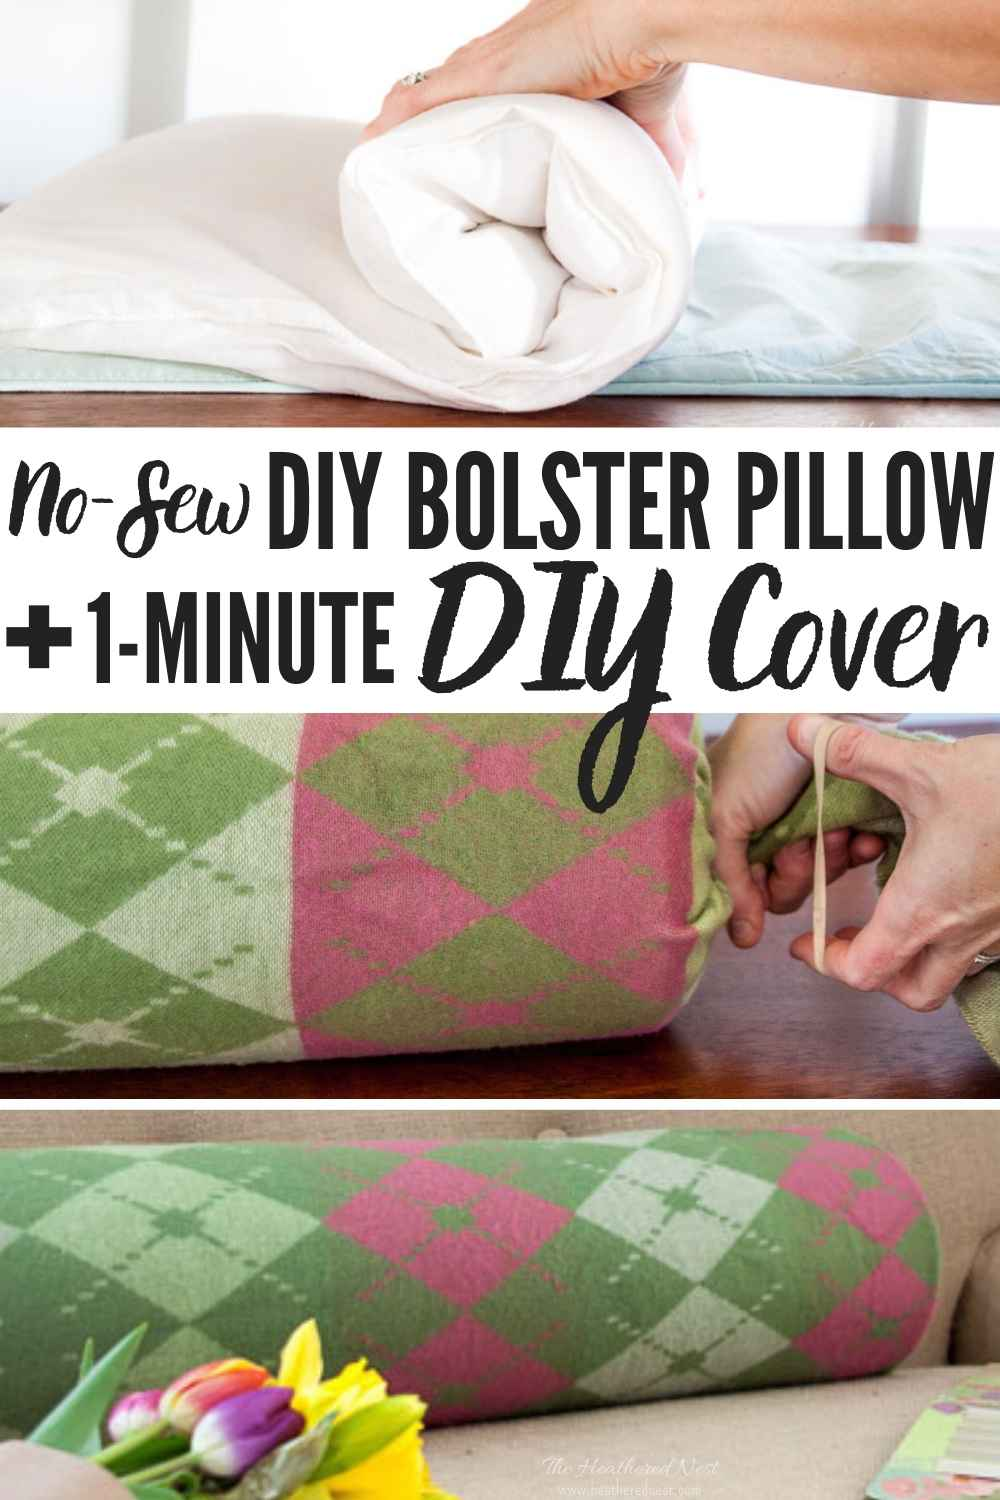 DON'T BUY! DIY a bolster pillow PLUS a cover in under 5-minutes, made with items you ALREADY own! Here's how!